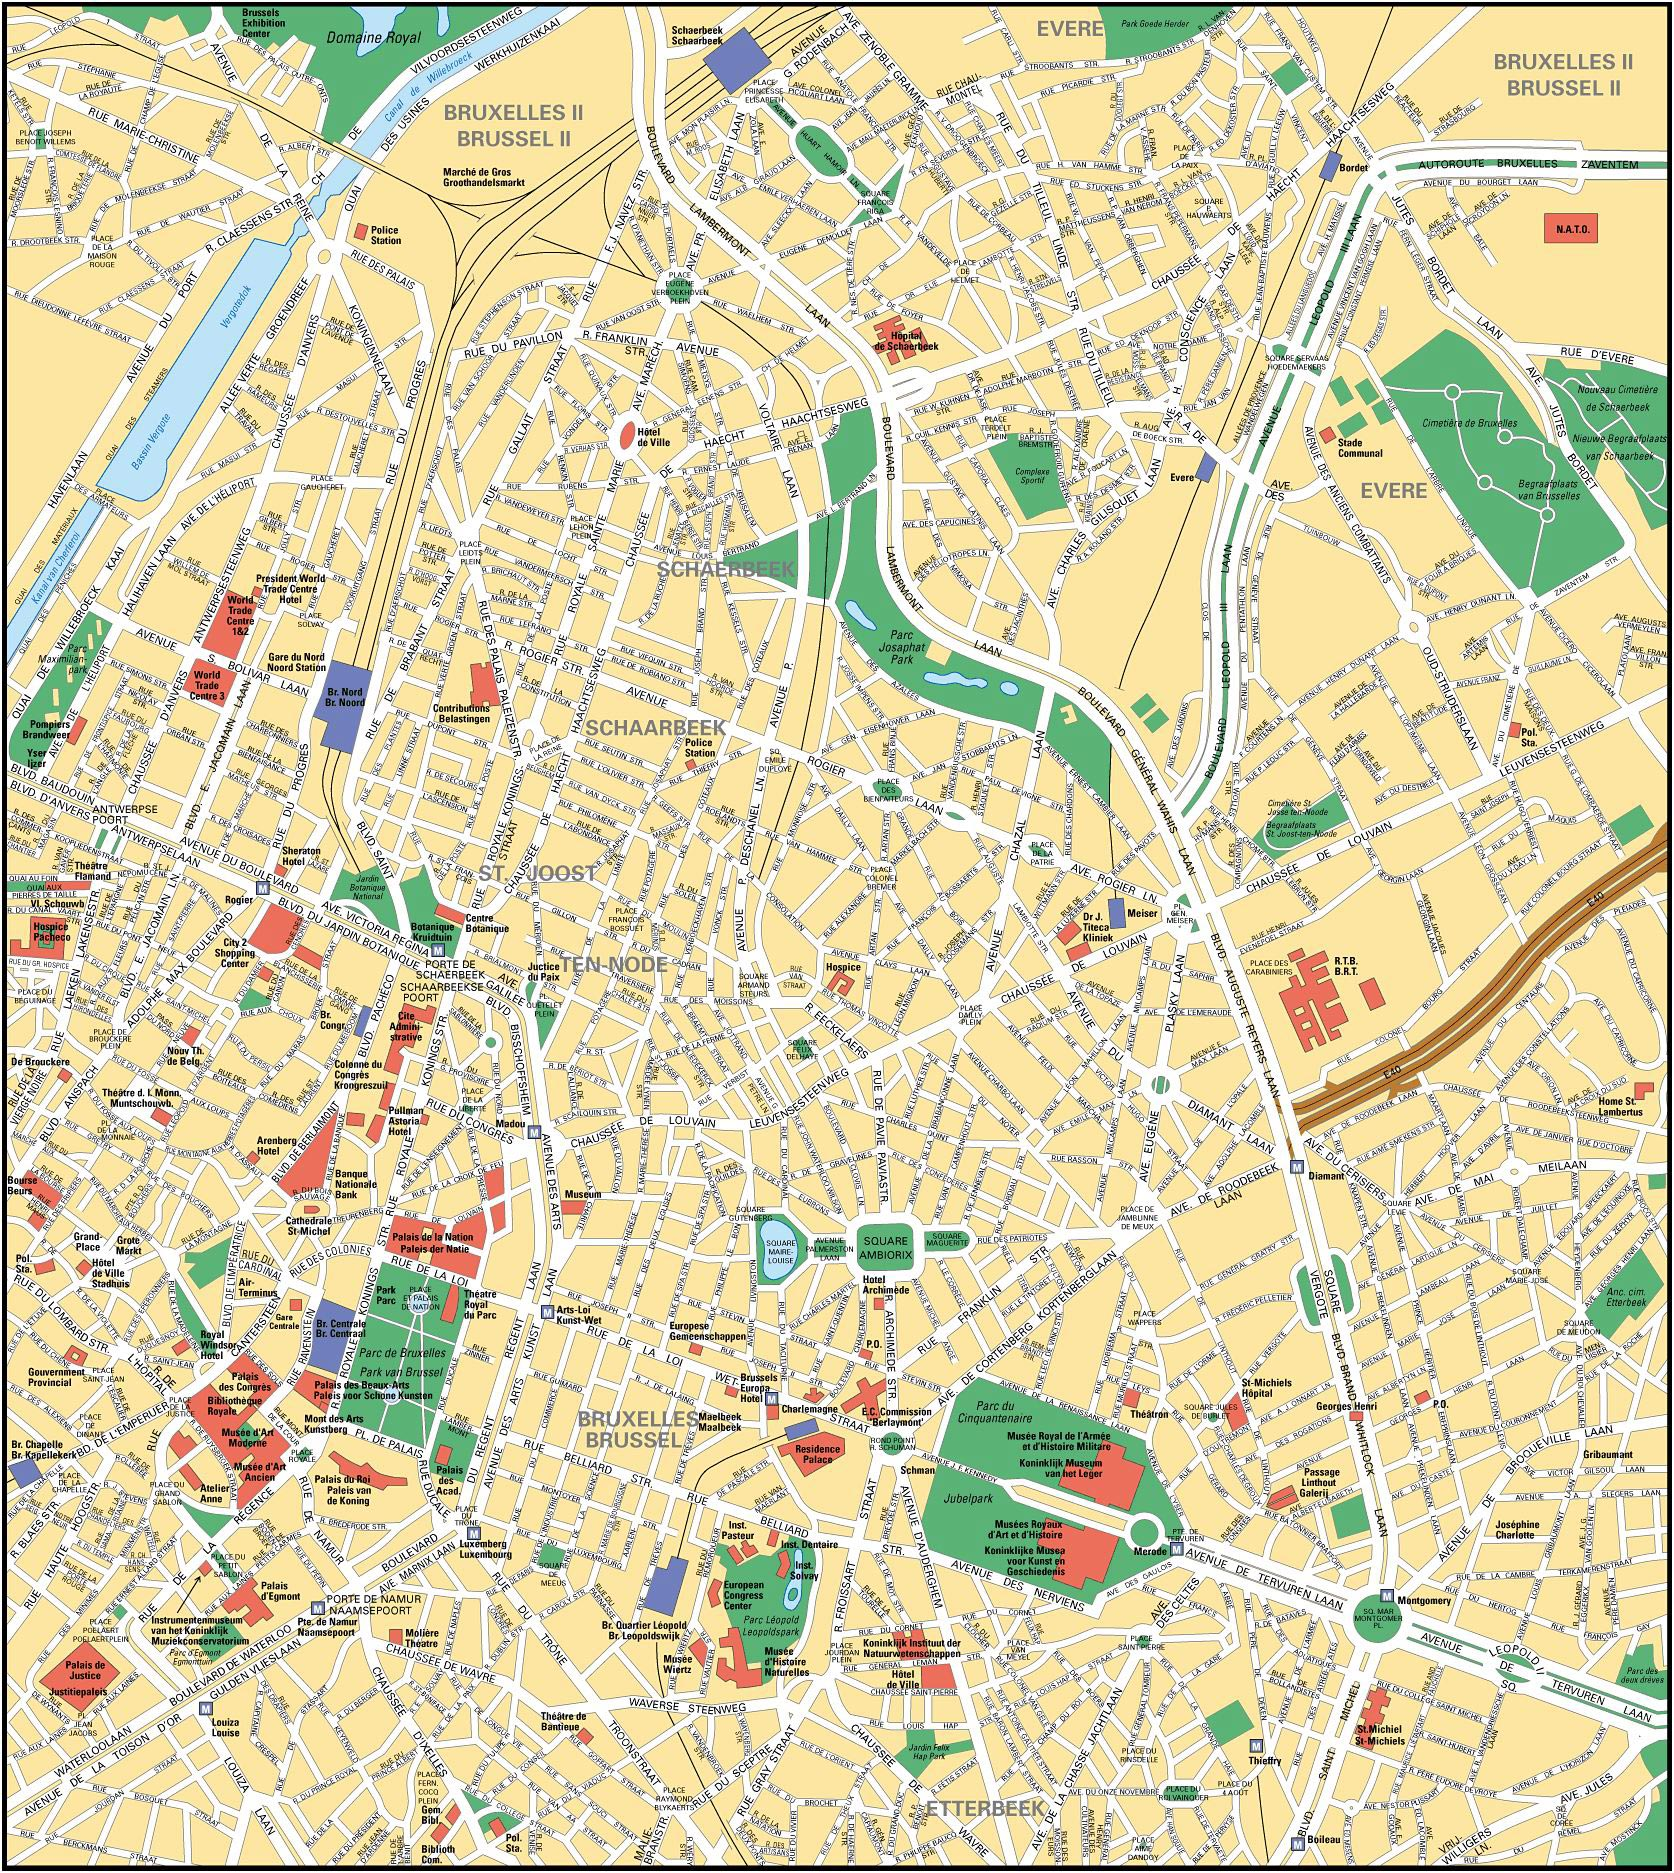 Brussels On Map Brussels Map   Detailed City and Metro Maps of Brussels for  Brussels On Map